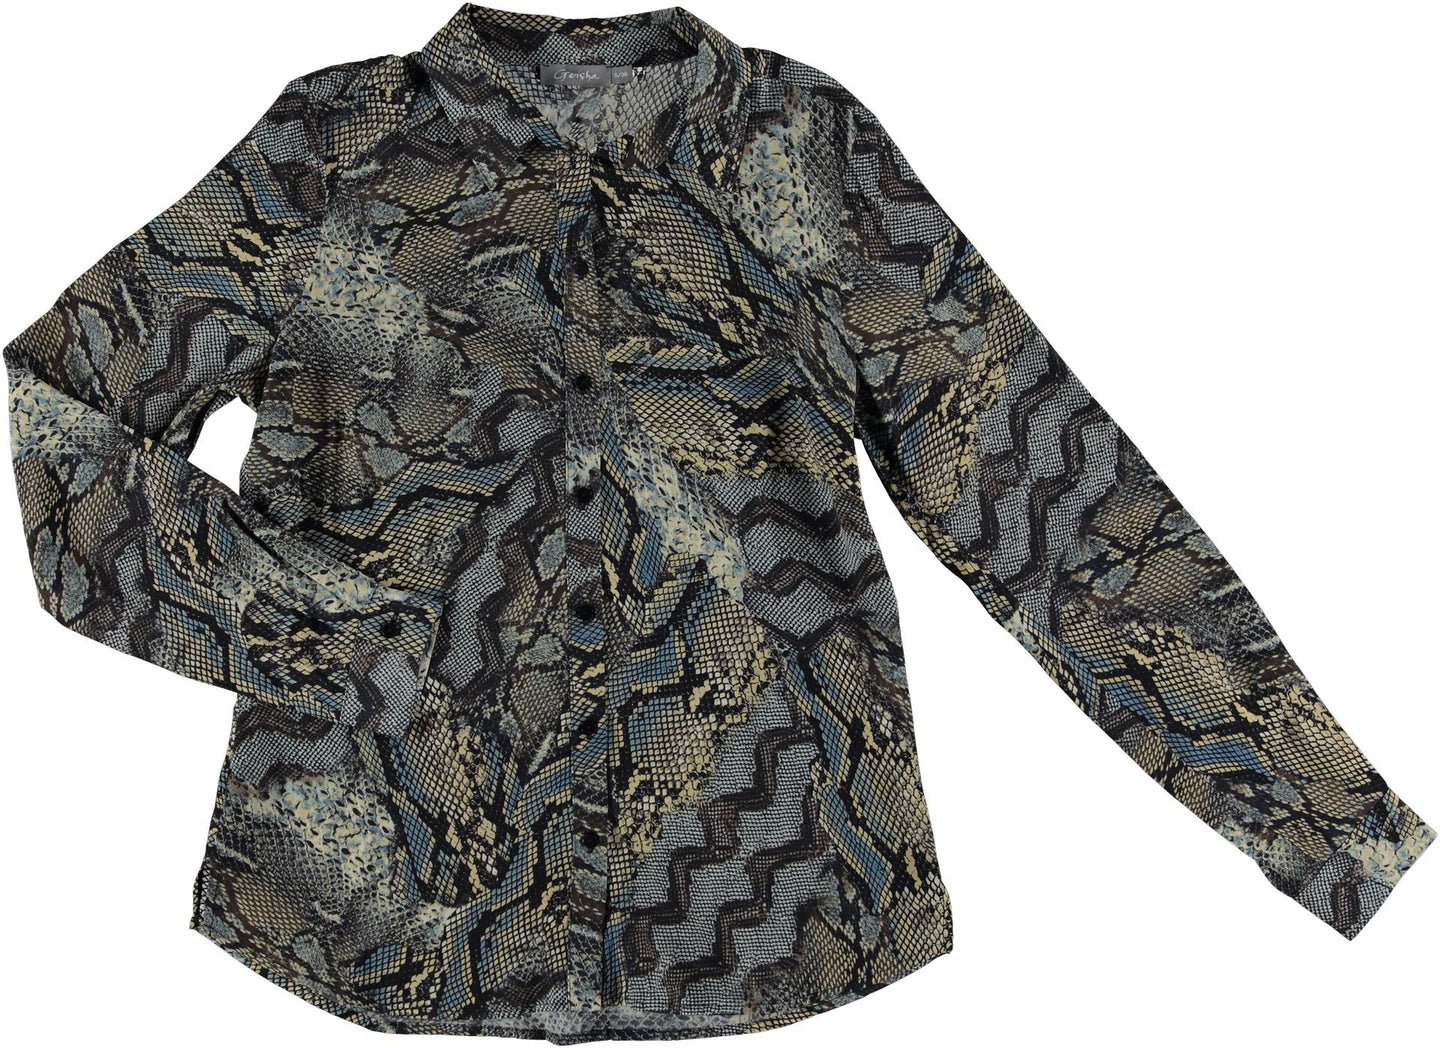 GEISHA - Blouse AOP snake - 000999 - black/brown combi